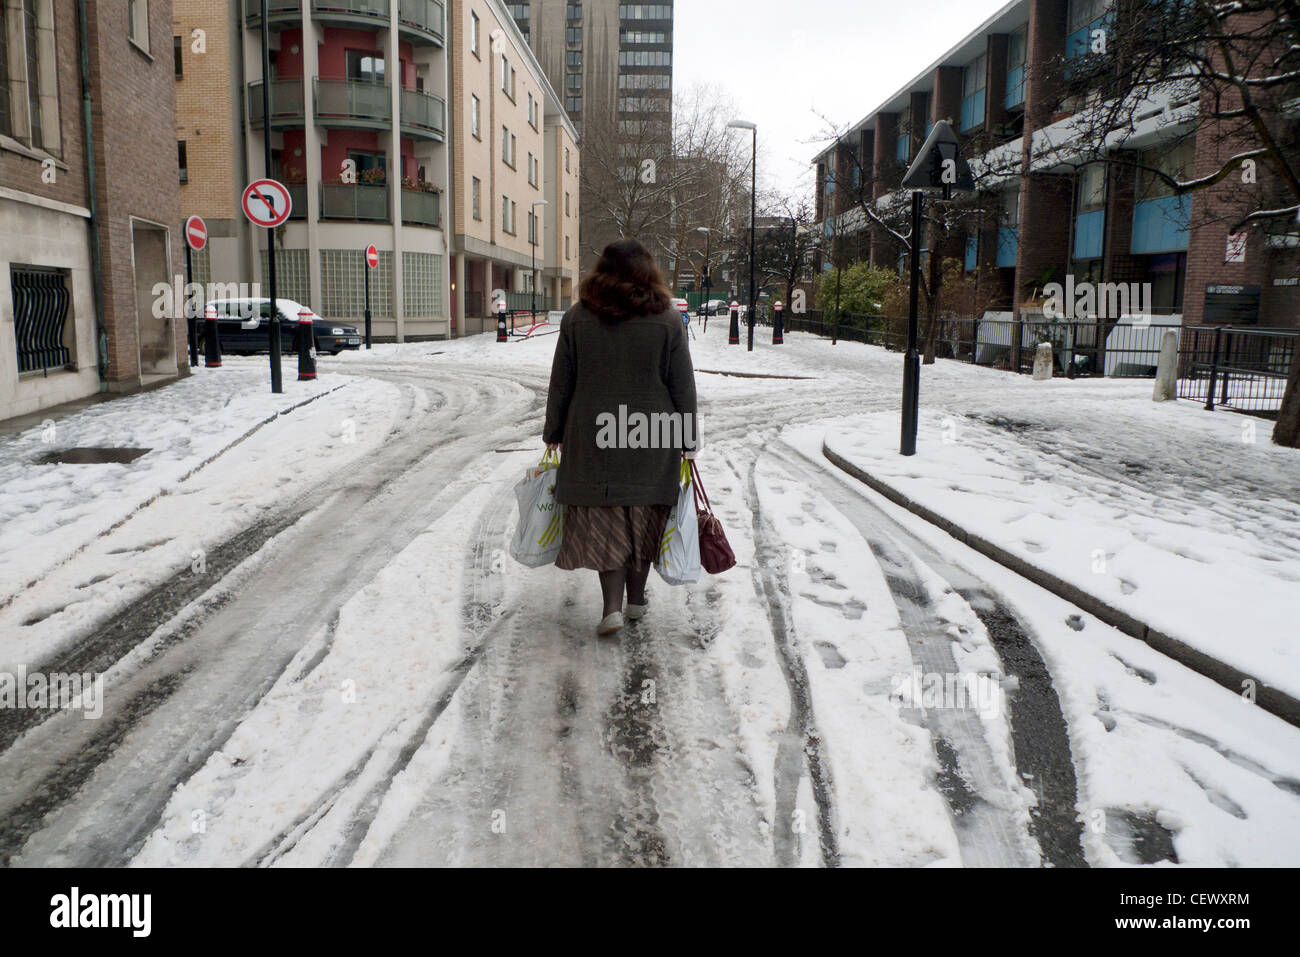 A woman walking along a snowy street in winter wearing shoes with Waitrose shopping bags near Golden Lane in Central Stock Photo